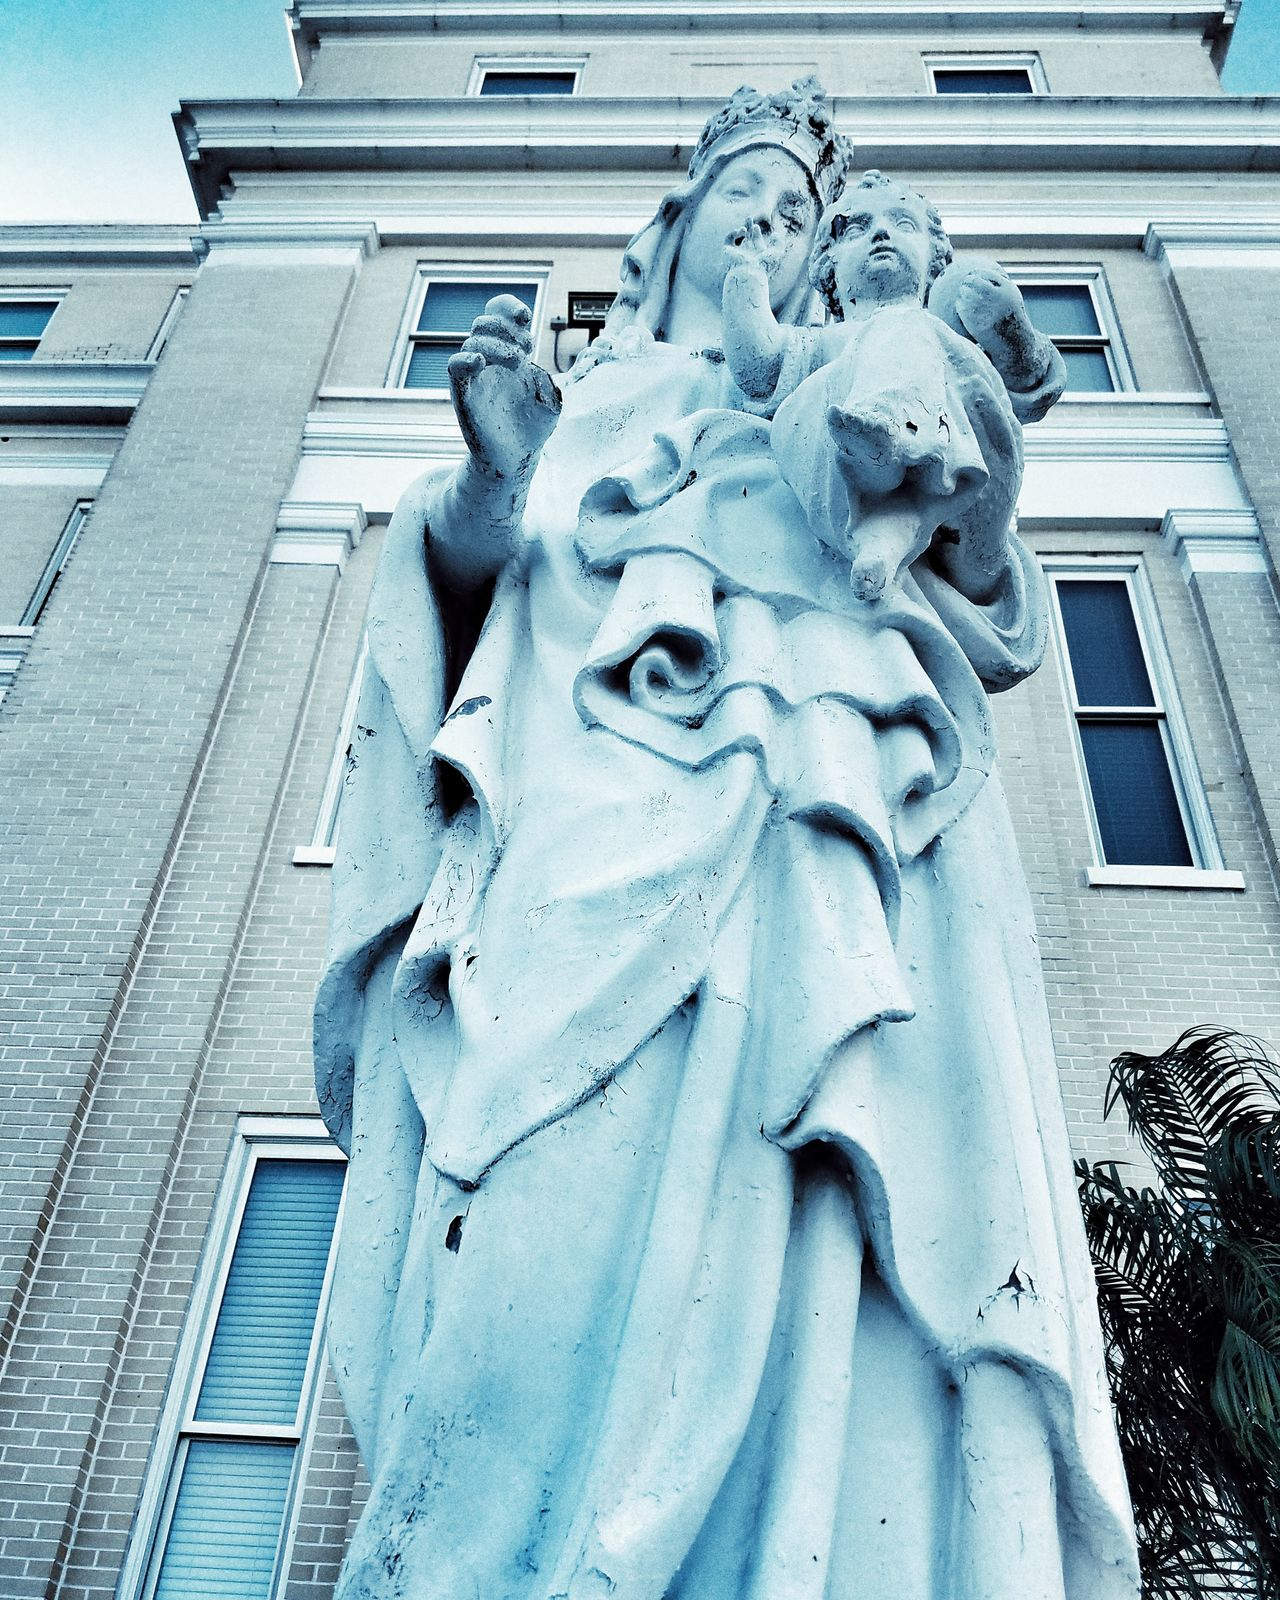 Sculpture Art And Craft Low Angle View Statue Human Representation No People Architecture Building Exterior Close-up Built Structure Outdoors Day